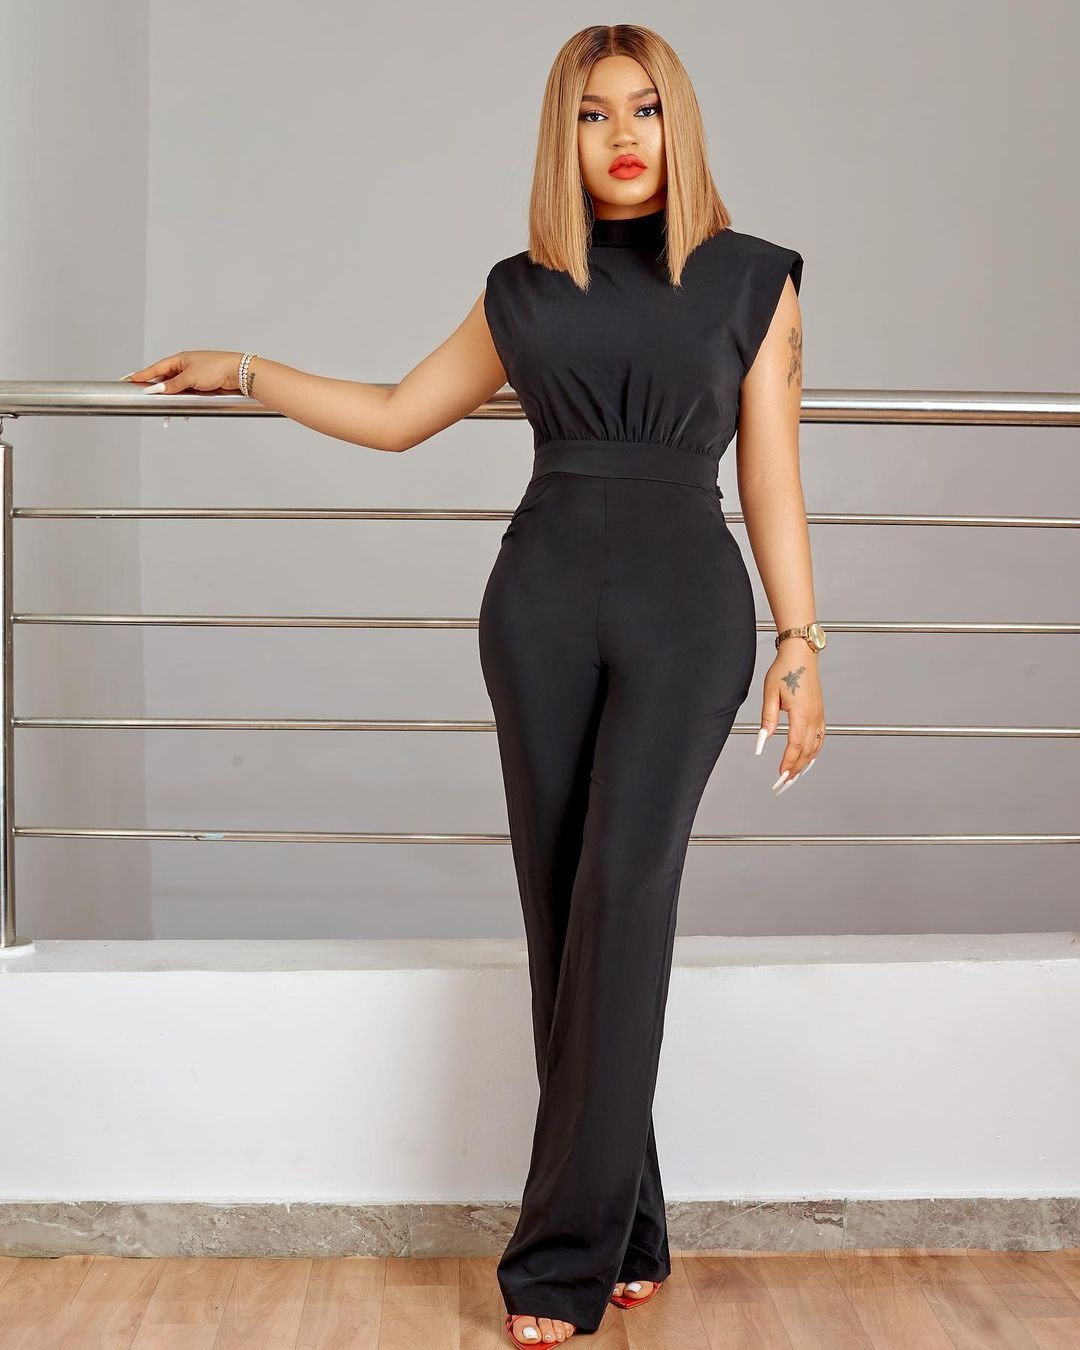 Adeola Adeyemi Is All About Keeping It Together In A One-Piece Outfit